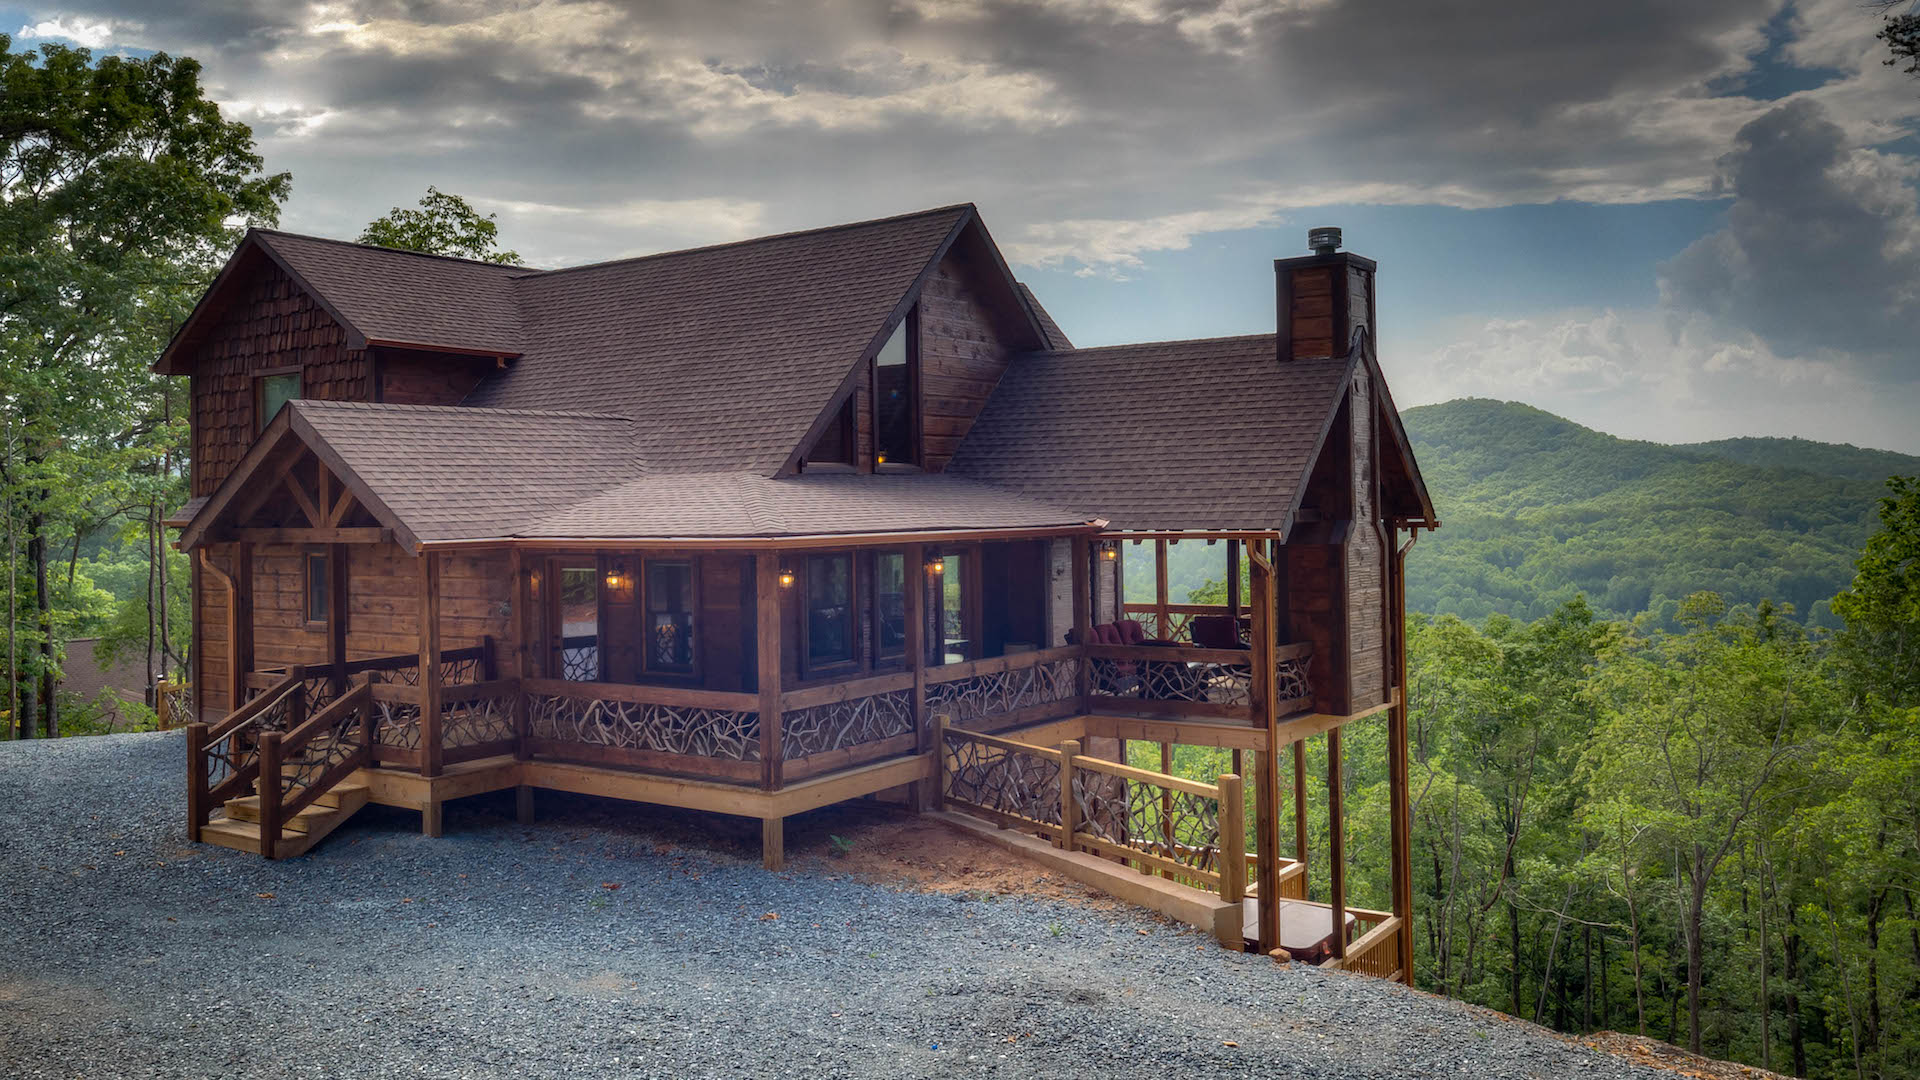 rent lodge cherokee rentals tub pool hot mountain weebly carolina orig north cabin cabins table for adohi